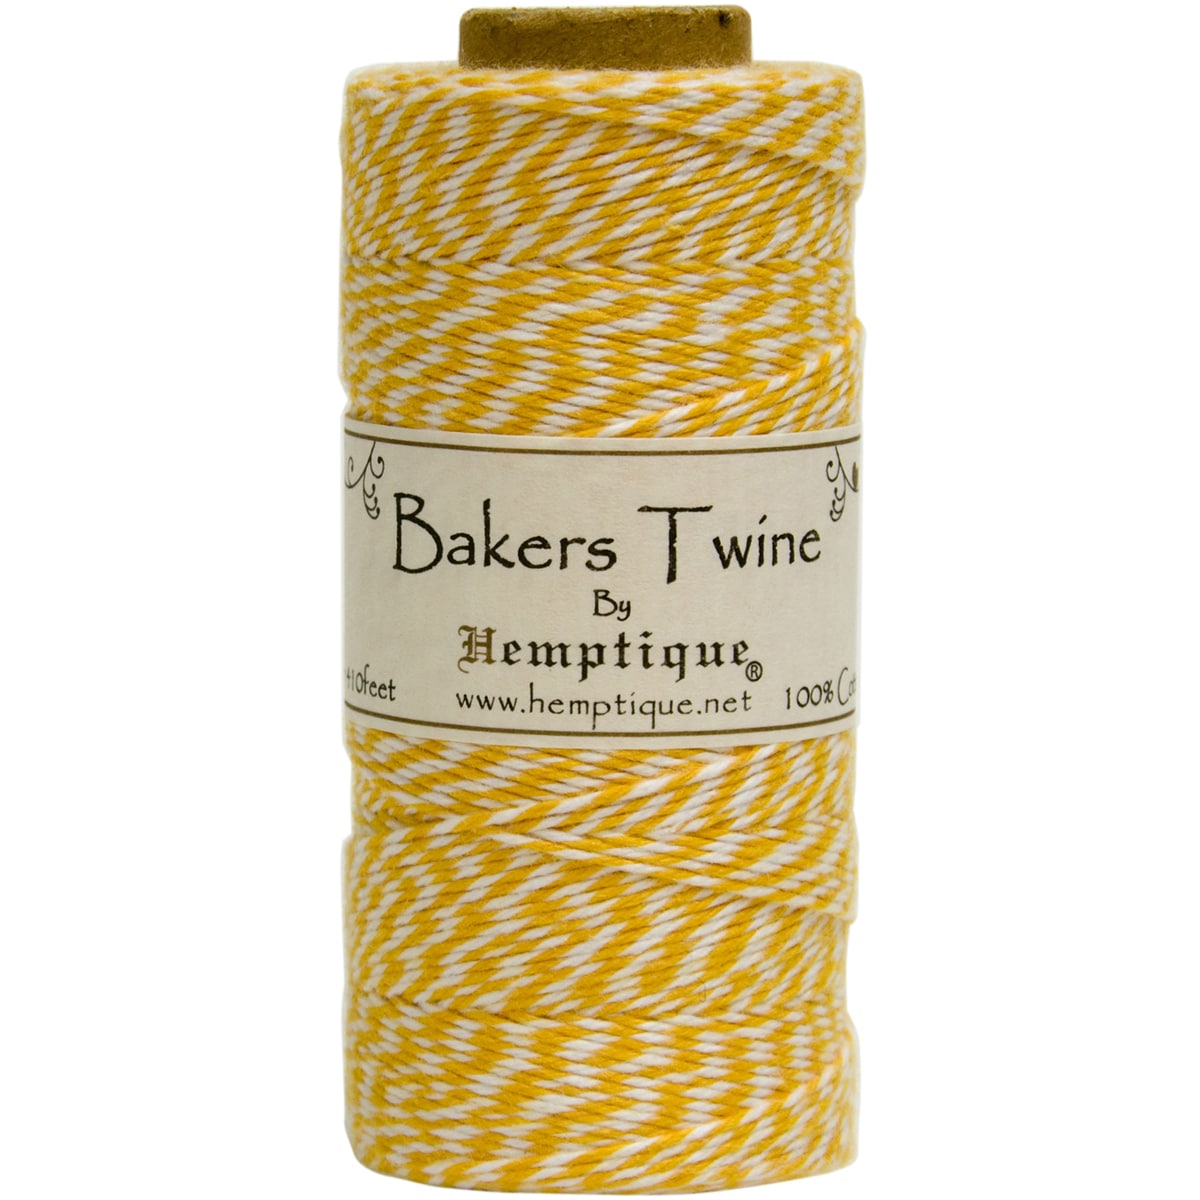 Cotton Baker's Twine Spool 2-Ply 410' (Yellow)